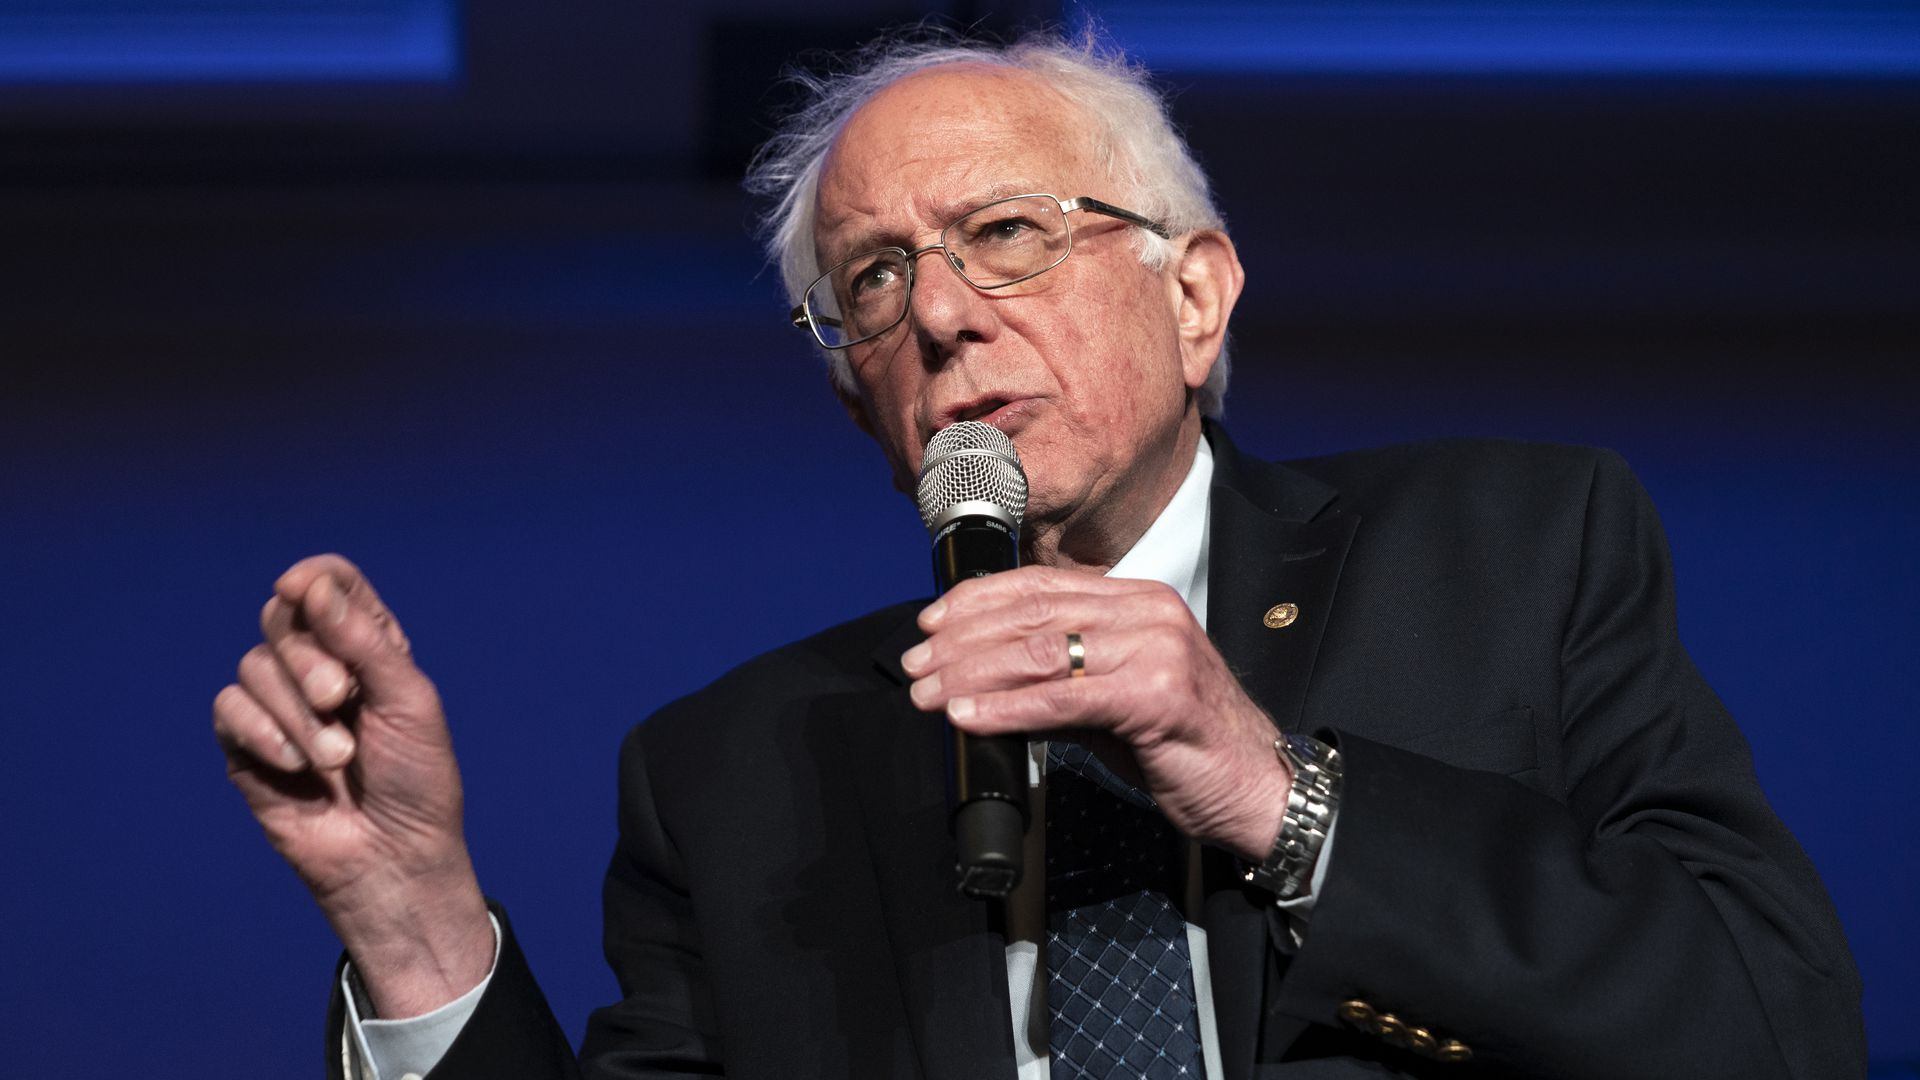 Senator and presidential candidate, Bernie Sanders, speaks while making a gesture during the Unity and Freedom Forum on immigration policy in Pasadena, California.